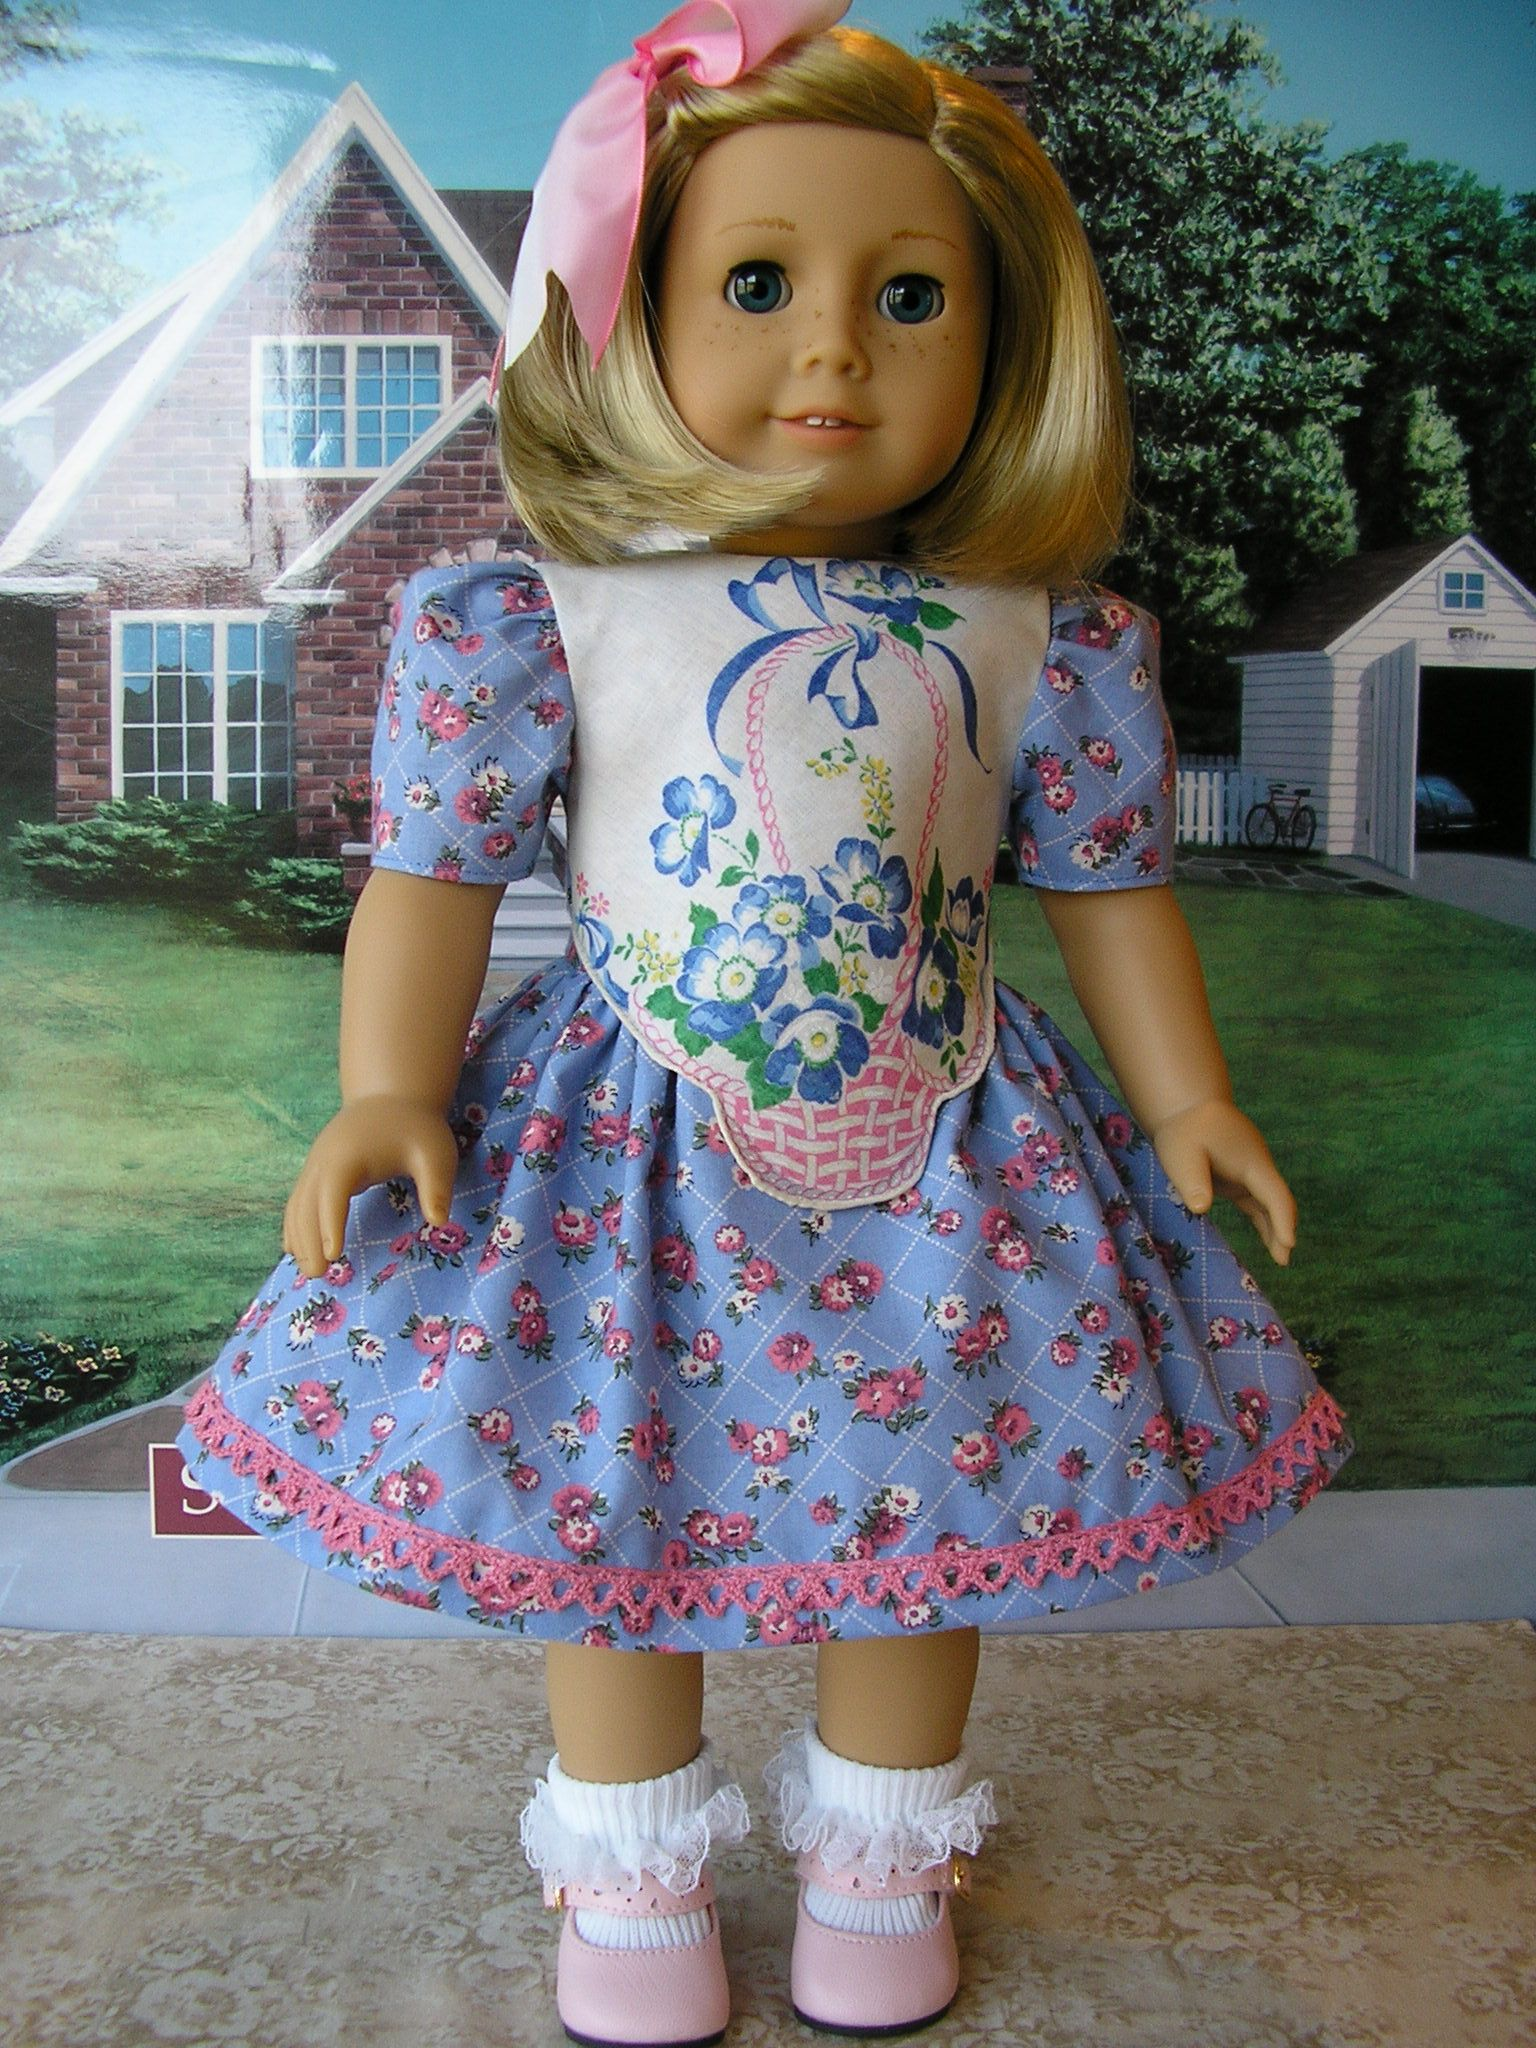 https://flic.kr/p/bDDVgv   basket 1   I'm back to sewing for American Girl dolls for my etsy shop!  The bodice on this dress is made from a vintage hankie.  There was a basket printed on each corner of the hankie, so I actually made four identical dresses!